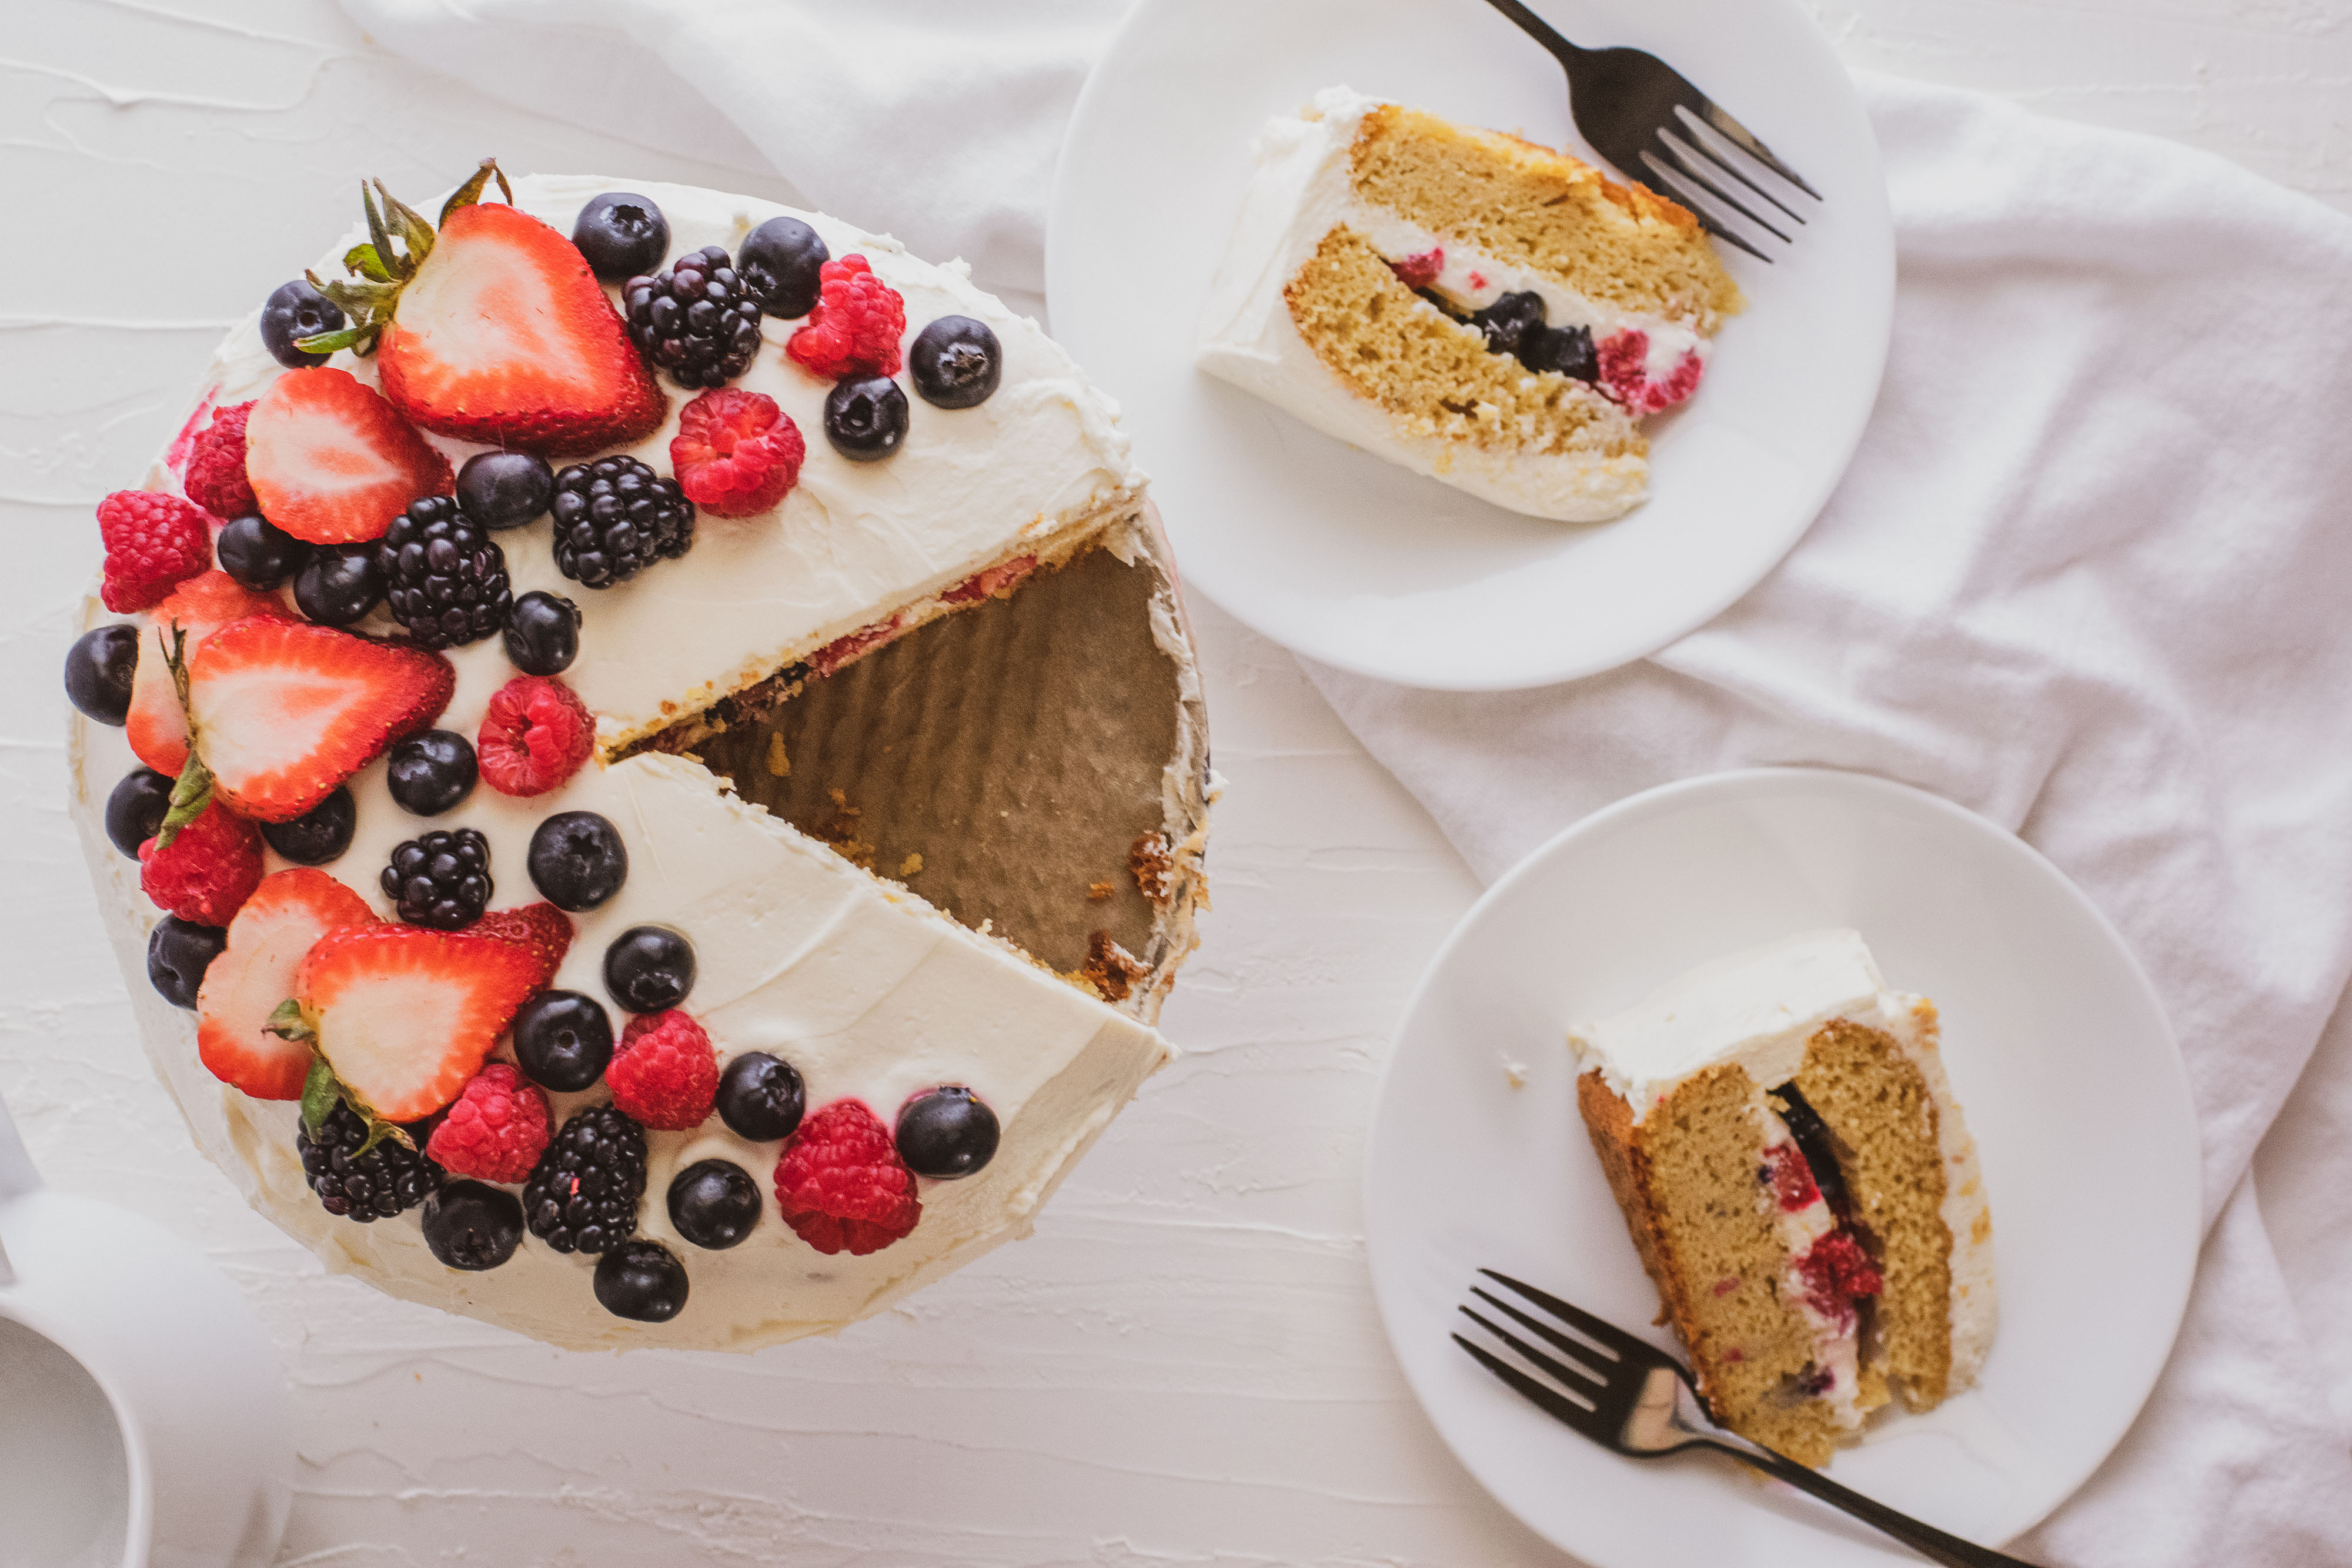 Keto Chantilly Cake a white cake with berries covering the top on a cake stand with a white surface and cut slices on white plates